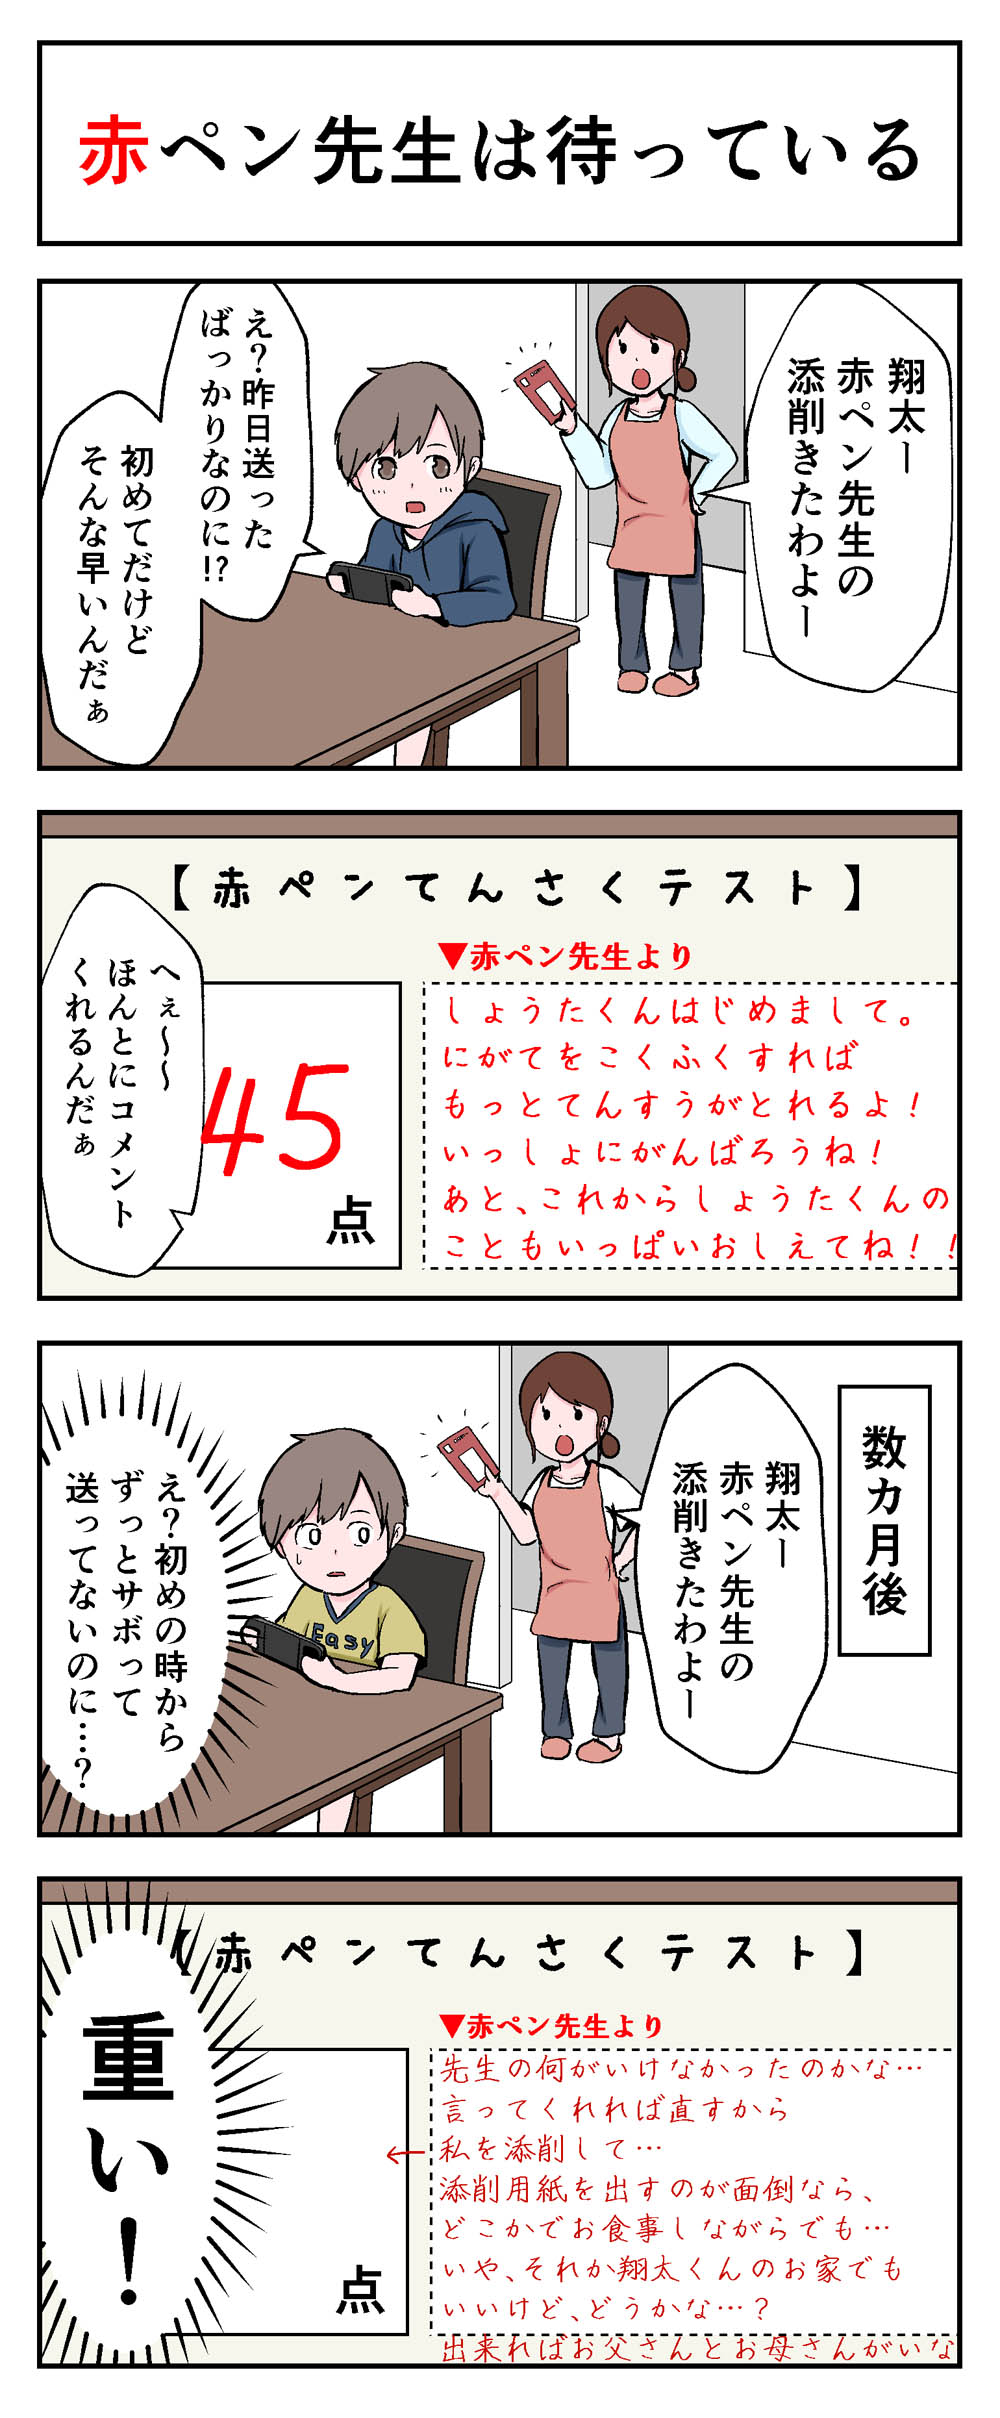 赤ペン先生は待っている